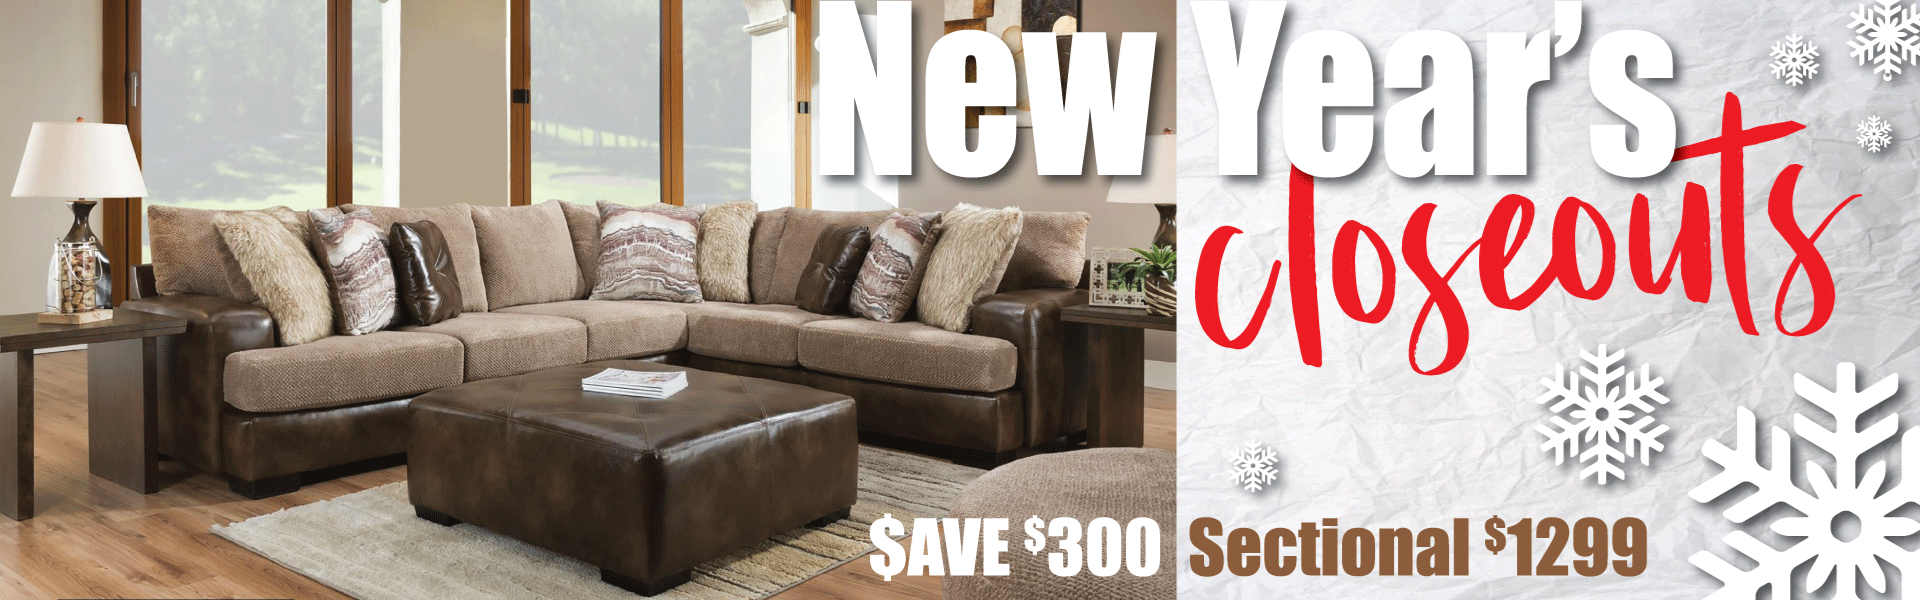 New Years Closeouts